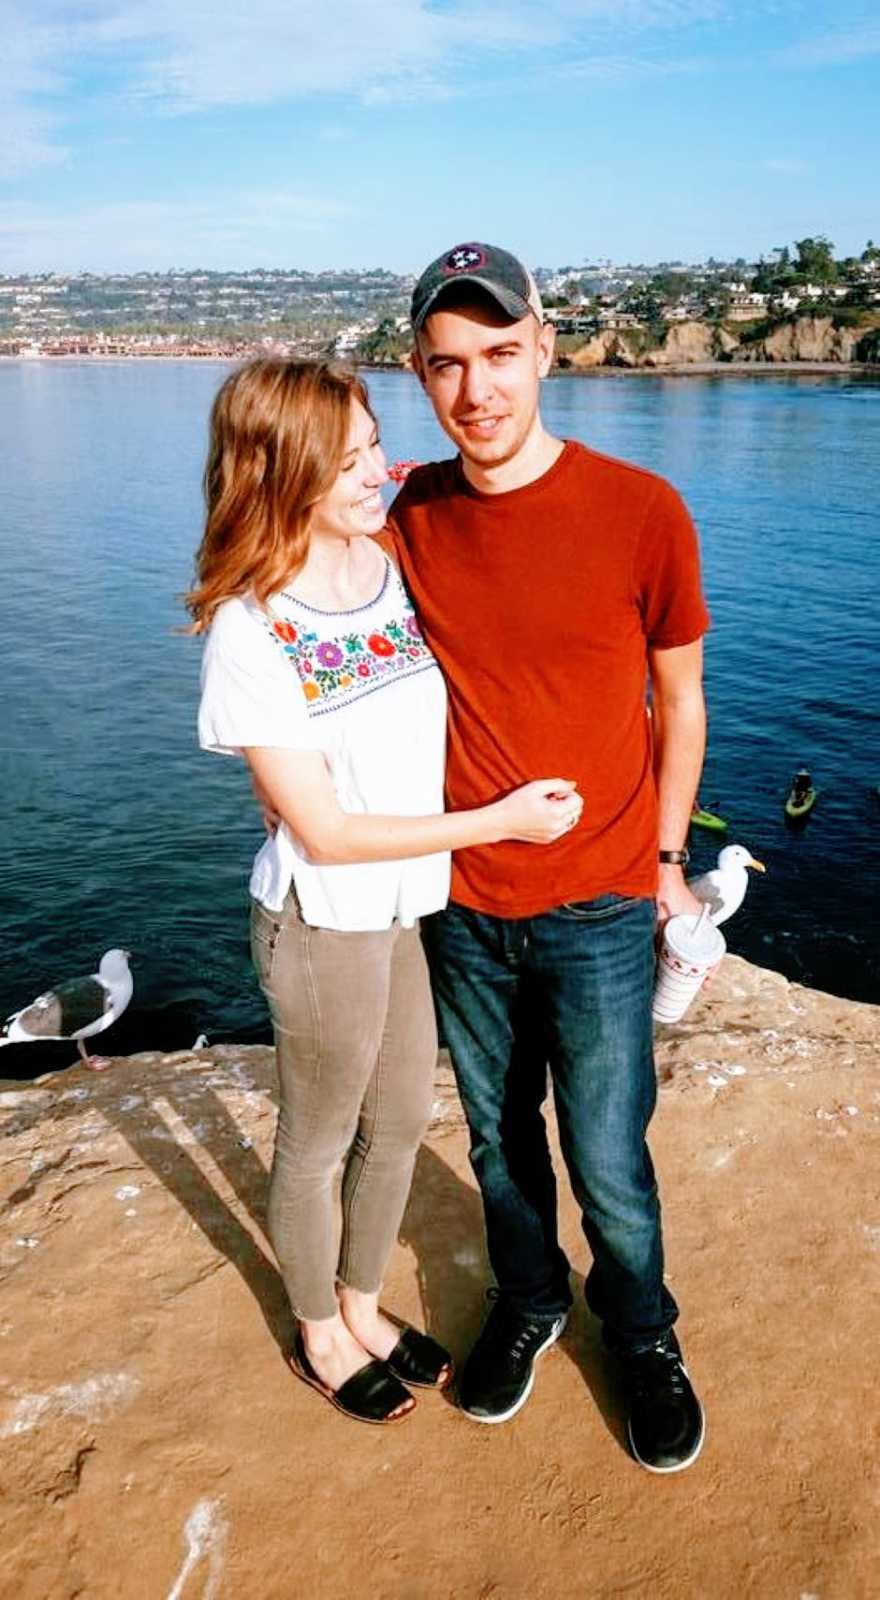 Couple take photo together while standing on a rock near the water with seagulls behind them